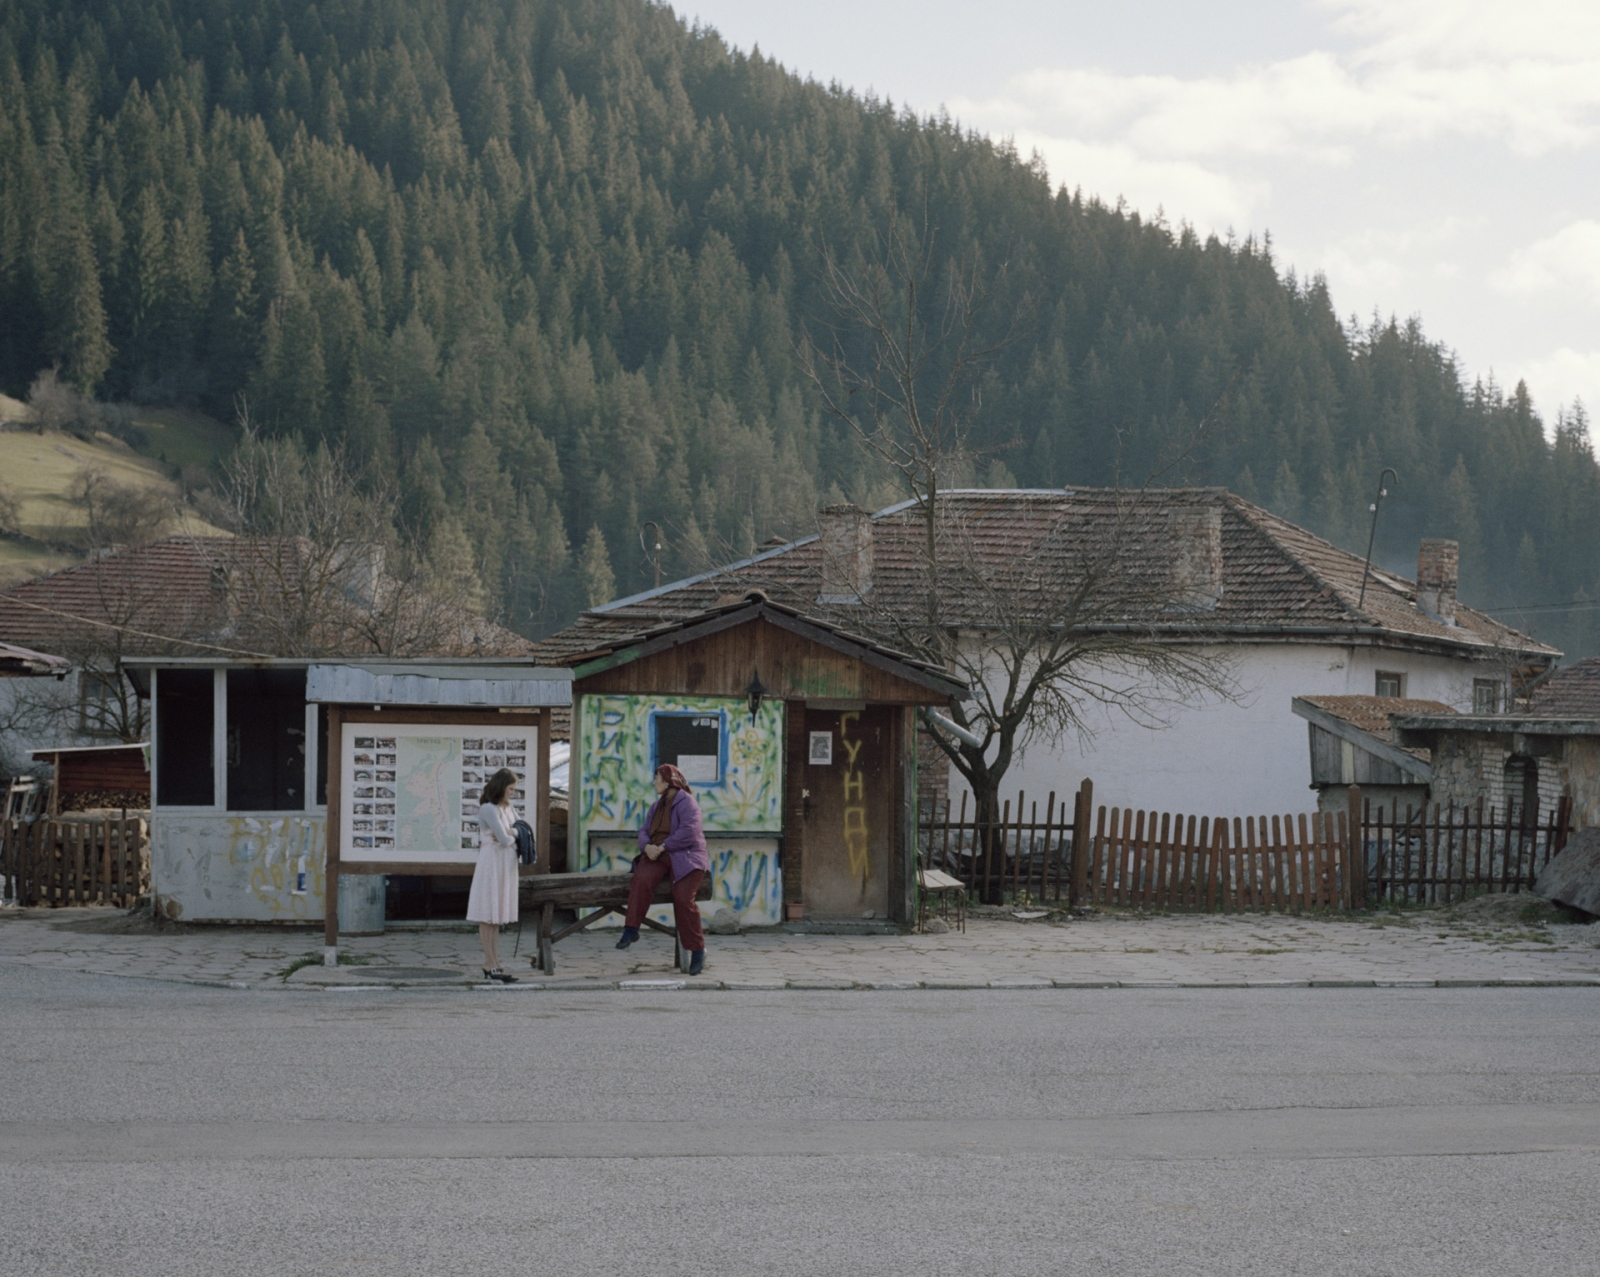 Bulgaria, Trigrad. Two women stand on the side of the road.